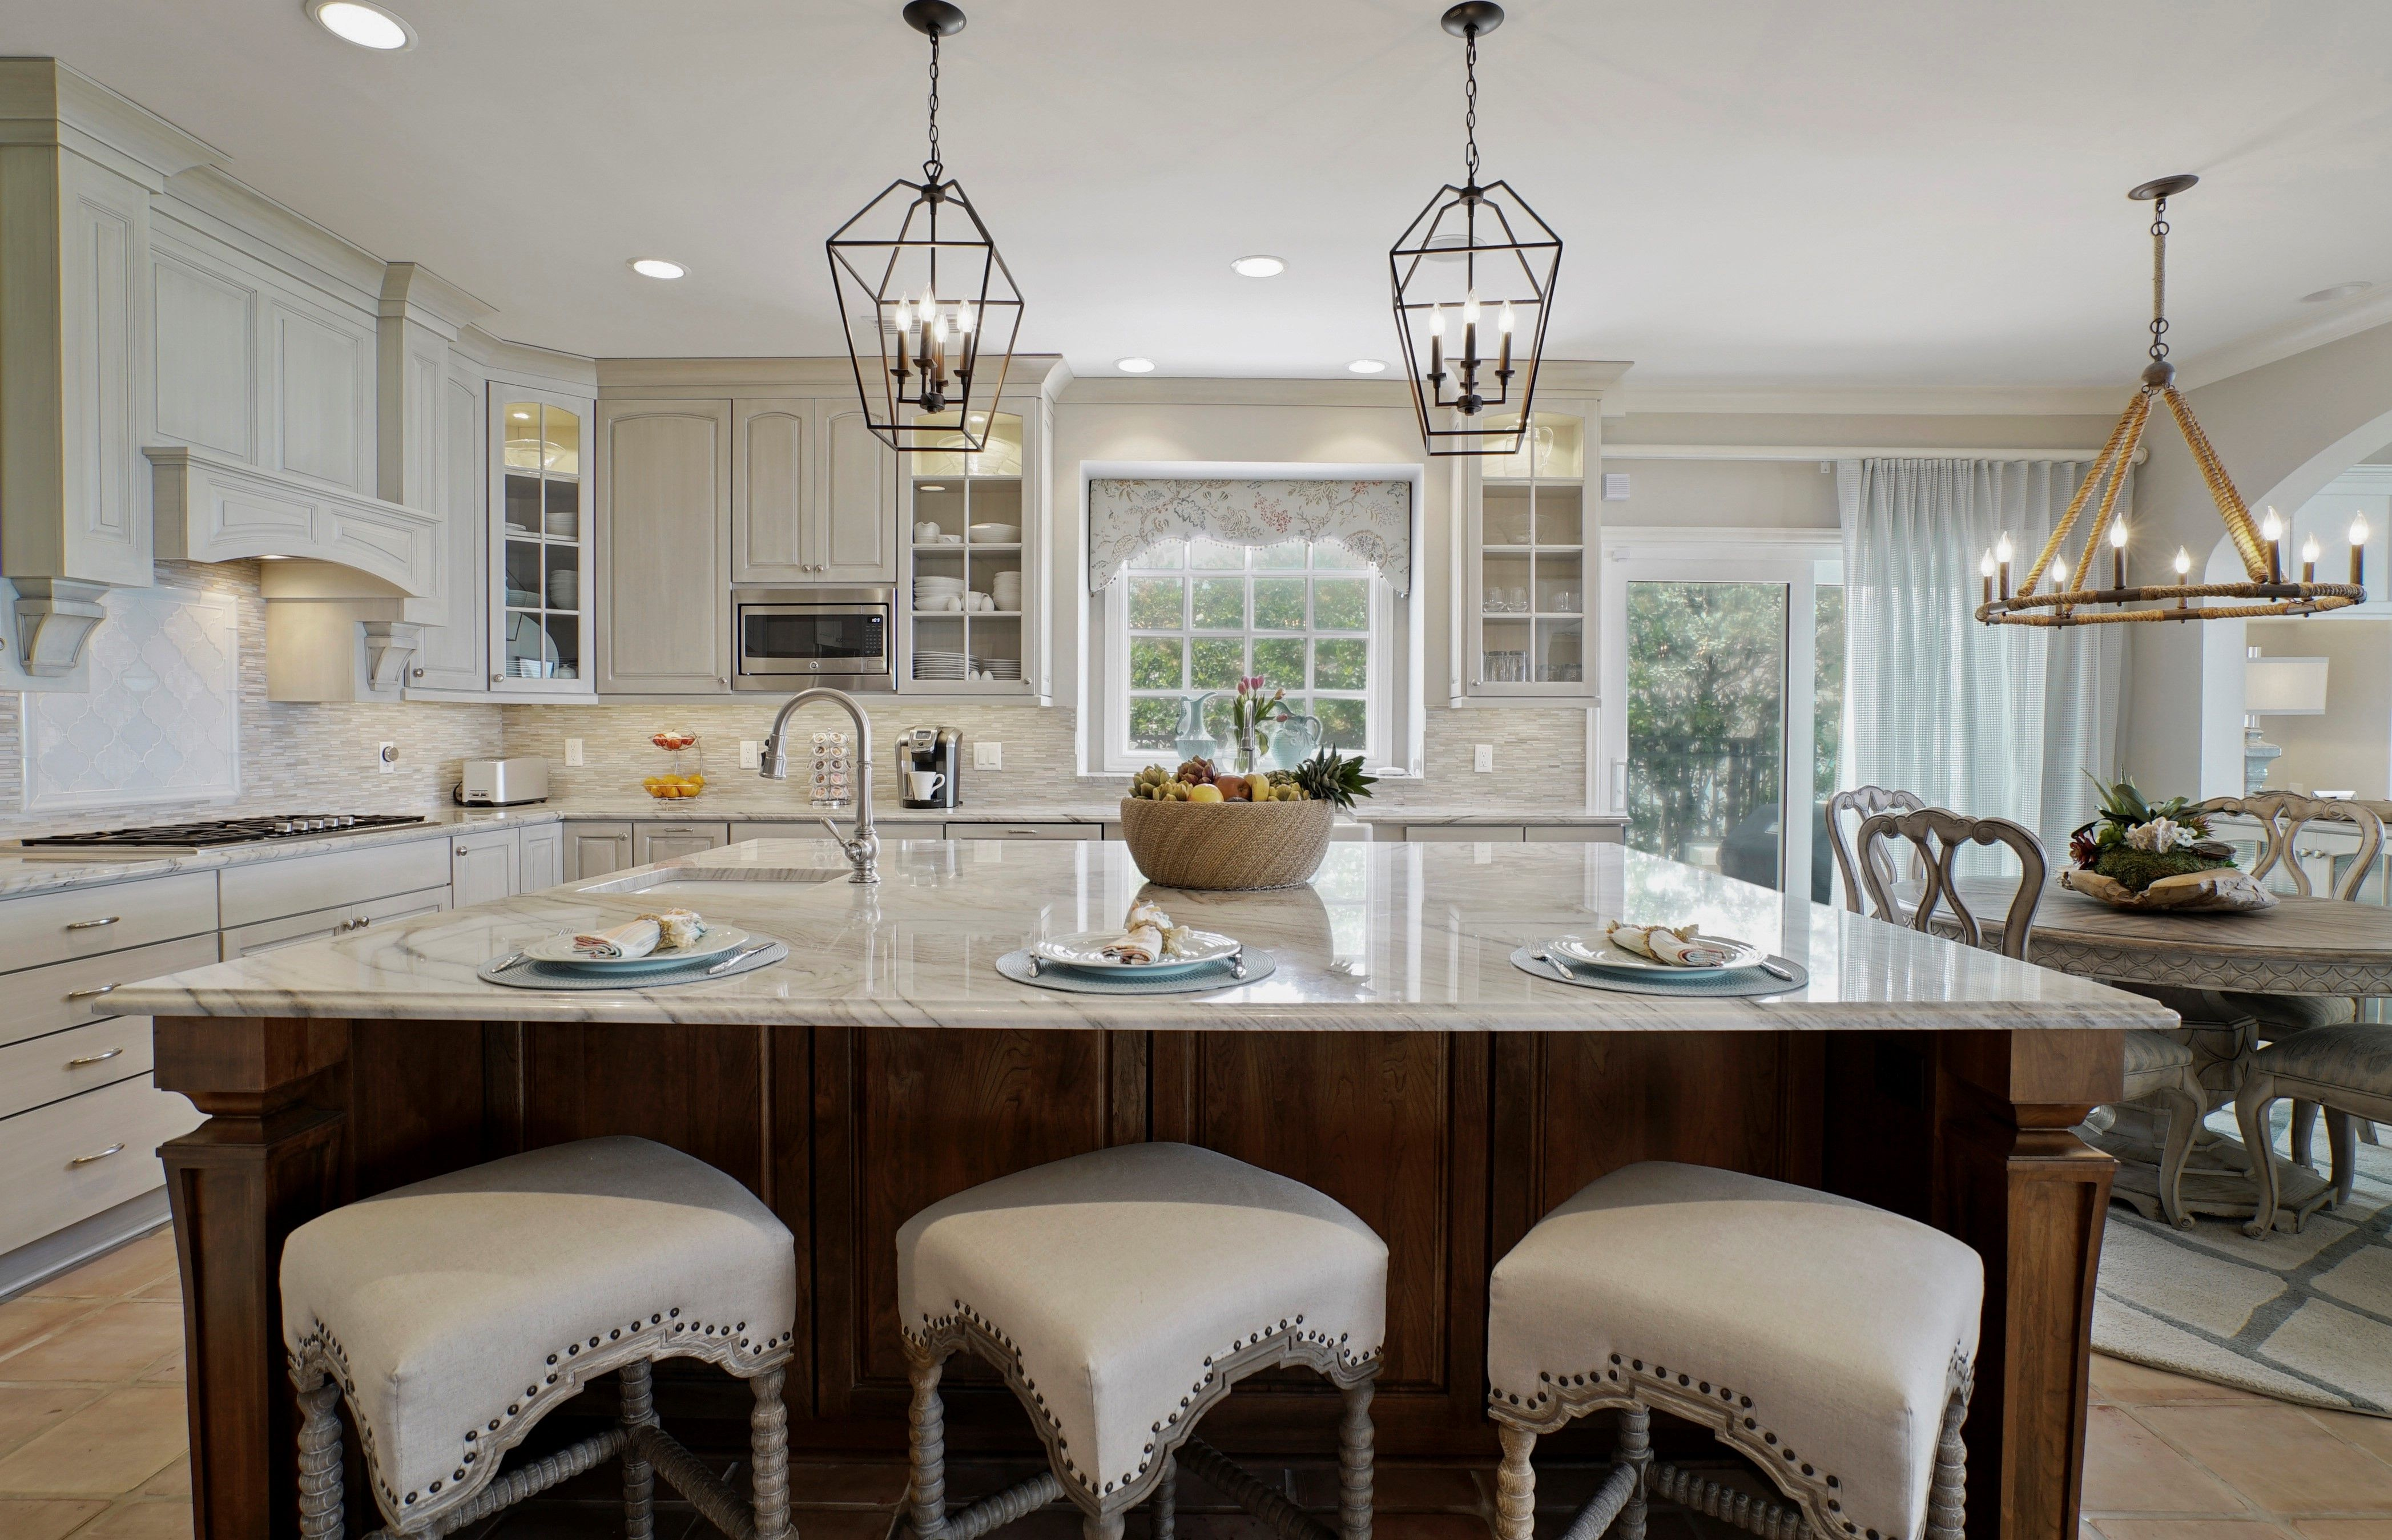 Ocean Breeze Family Gathering Room The Chroma Home Kitchen Concepts Contemporary Kitchen Inspiration Gathering Room